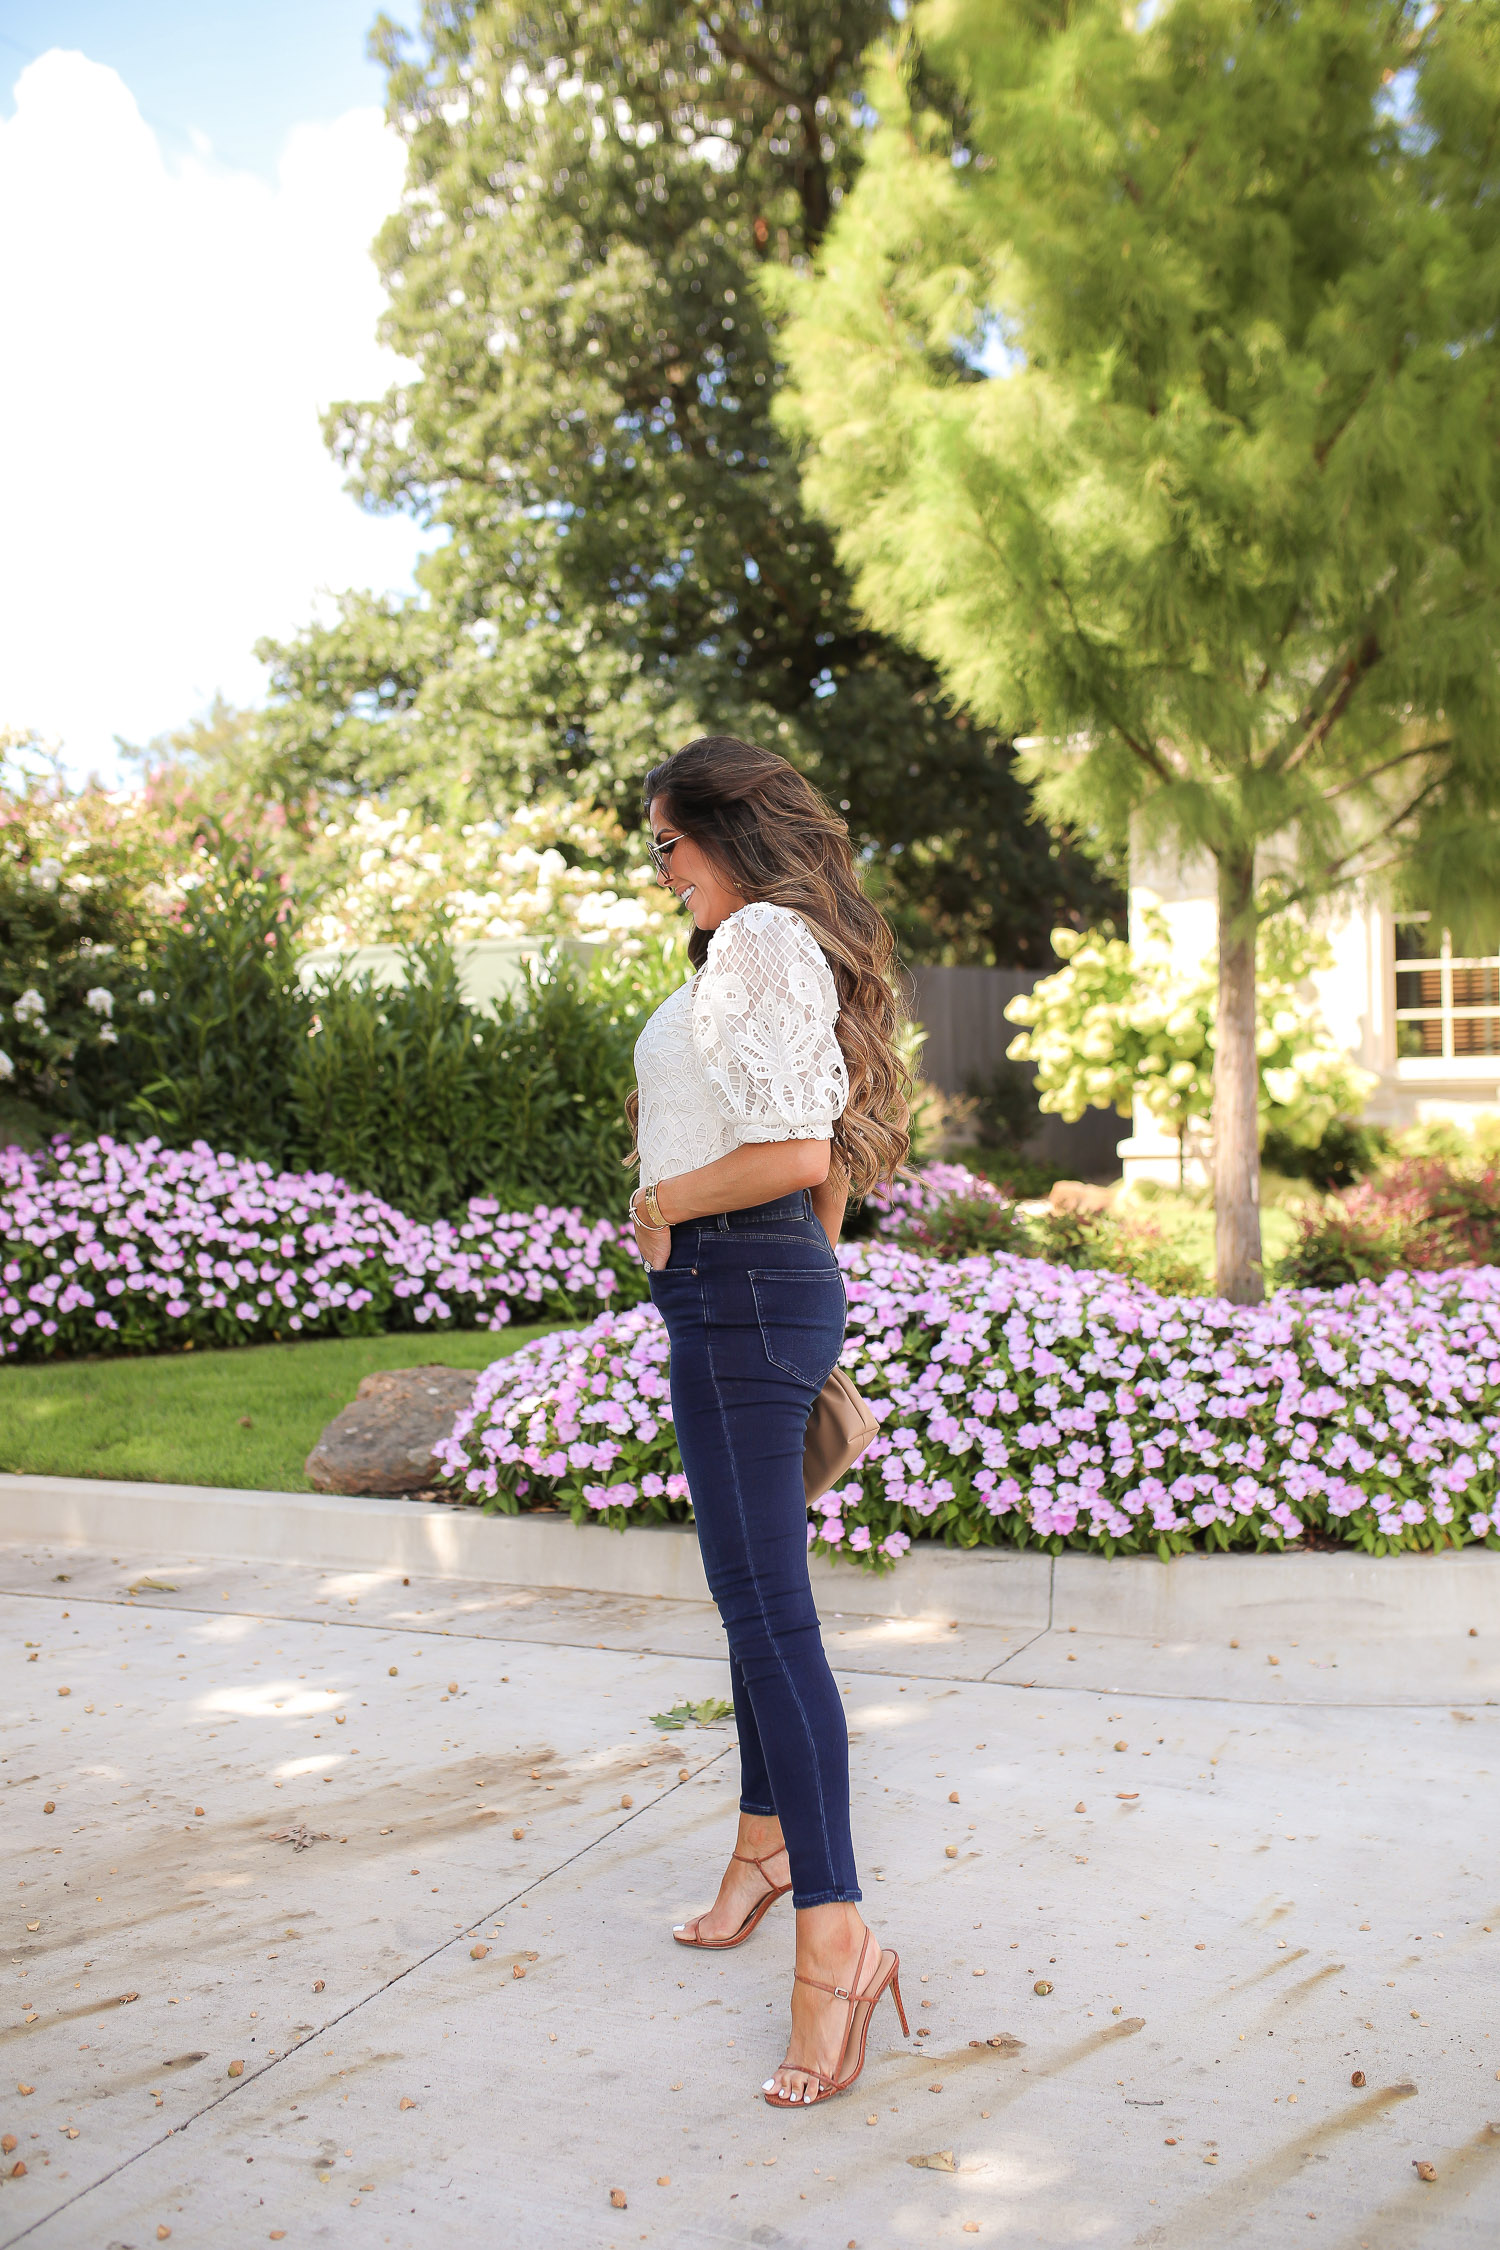 express fall 2020, express fall fashion trends 2020 pinterest, emily ann gemma, zimmermann dupe lookalike top, chloe dupe sunglasses | Fall Clothing by popular US fashion blog, The Sweetest Thing: image of Emily Gemma sitting down outside and wearing a Express Lace Puff Sleeve Top, Express High Waisted Luxe Comfort Knit Faded Skinny Jeans, Express Octagon Cut-Out Sunglasses, Express Thin Strap Textured Heels, Chanel earrings, and Cartier bracelets.